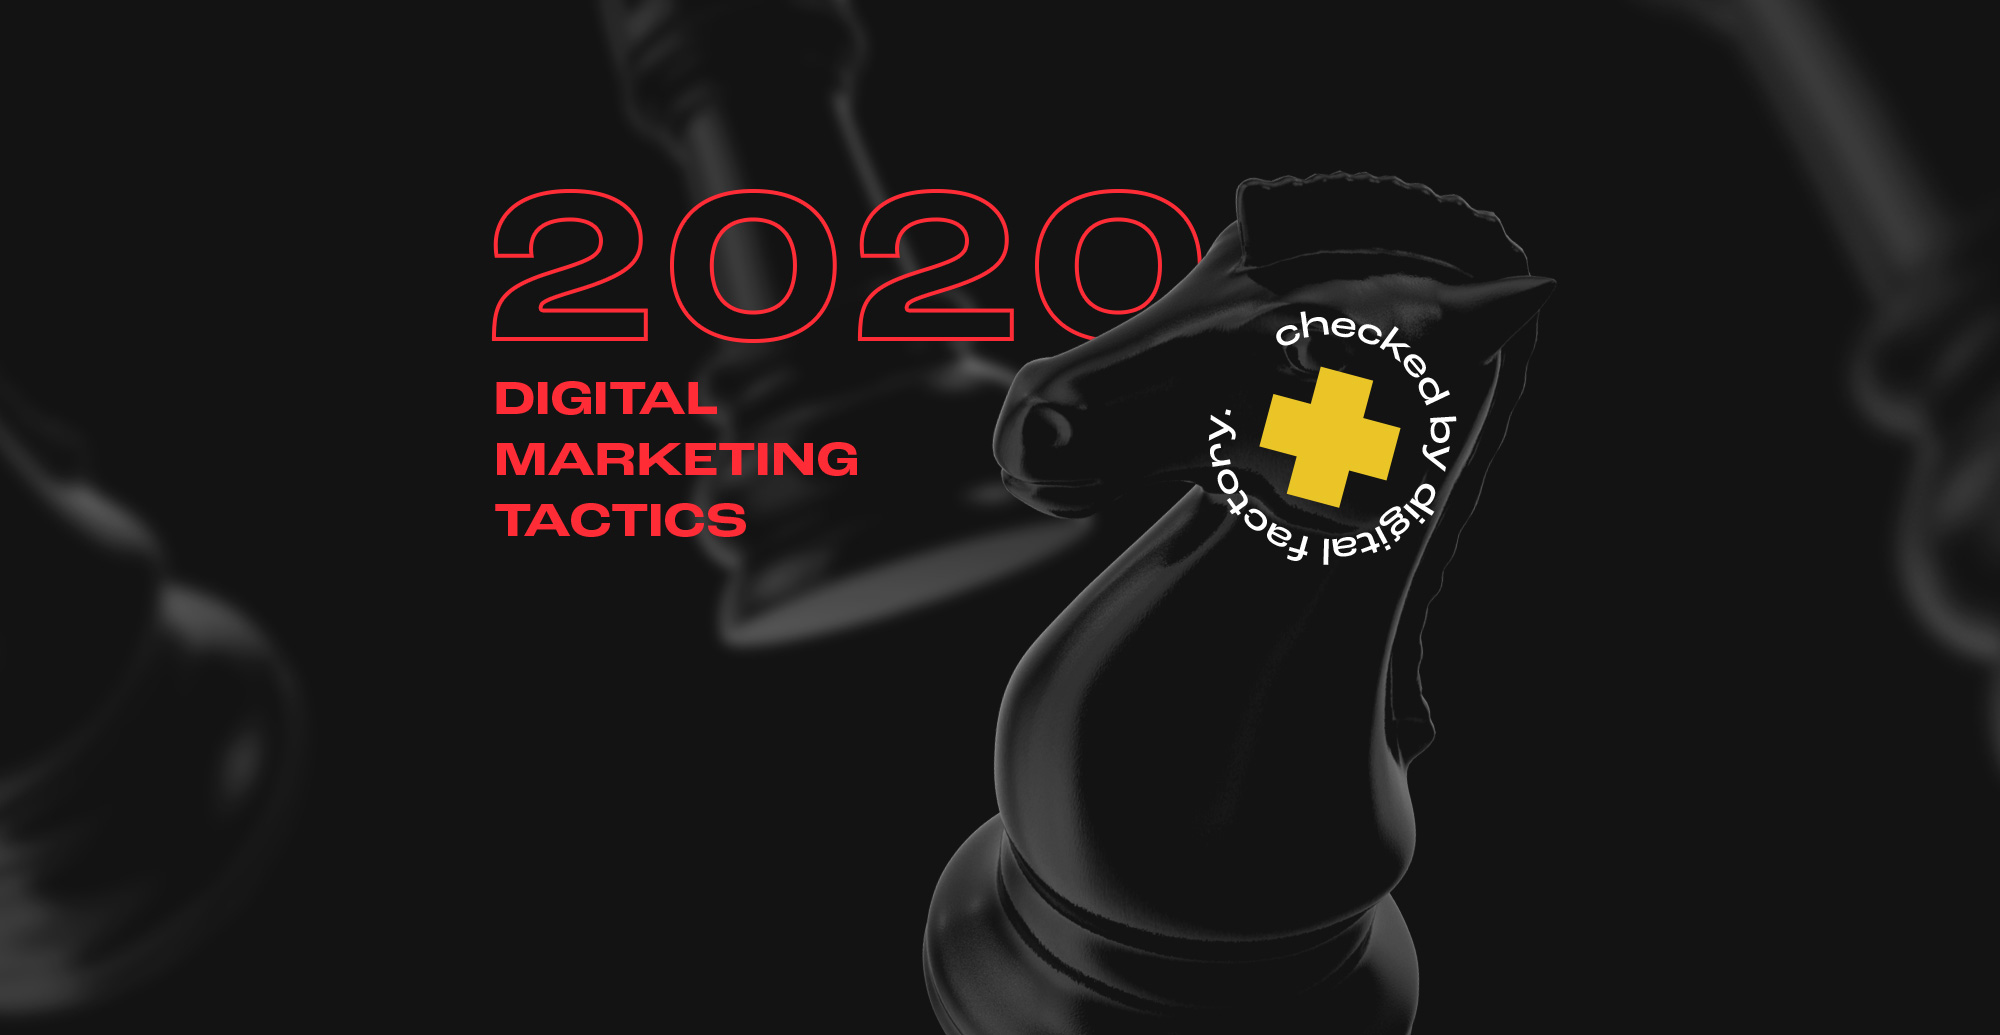 Best 2020 digital marketing tactics for small businesses